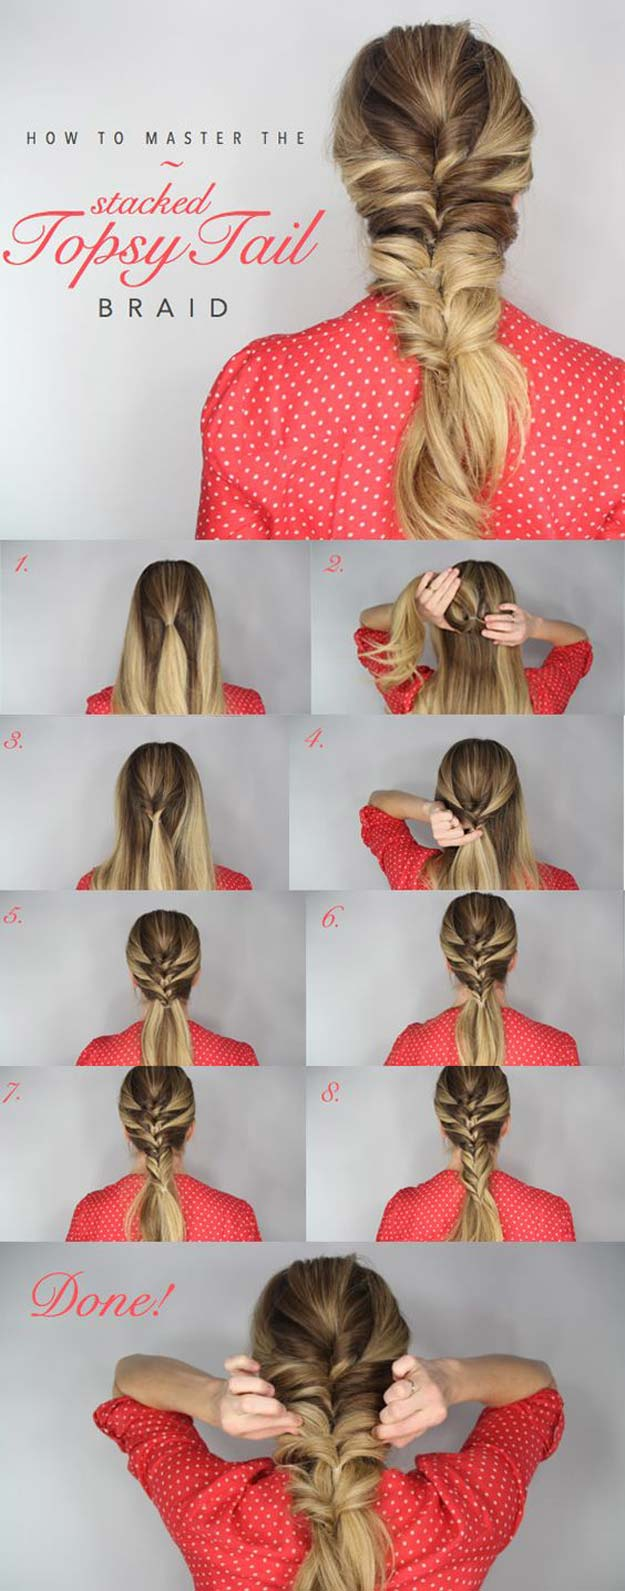 Best Hair Braiding Tutorials - Topsy Tail Braid - Easy Step by Step Tutorials for Braids - How To Braid Fishtail, French Braids, Flower Crown, Side Braids, Cornrows, Updos - Cool Braided Hairstyles for Girls, Teens and Women - School, Day and Evening, Boho, Casual and Formal Looks #hairstyles #braiding #braidingtutorials #diyhair